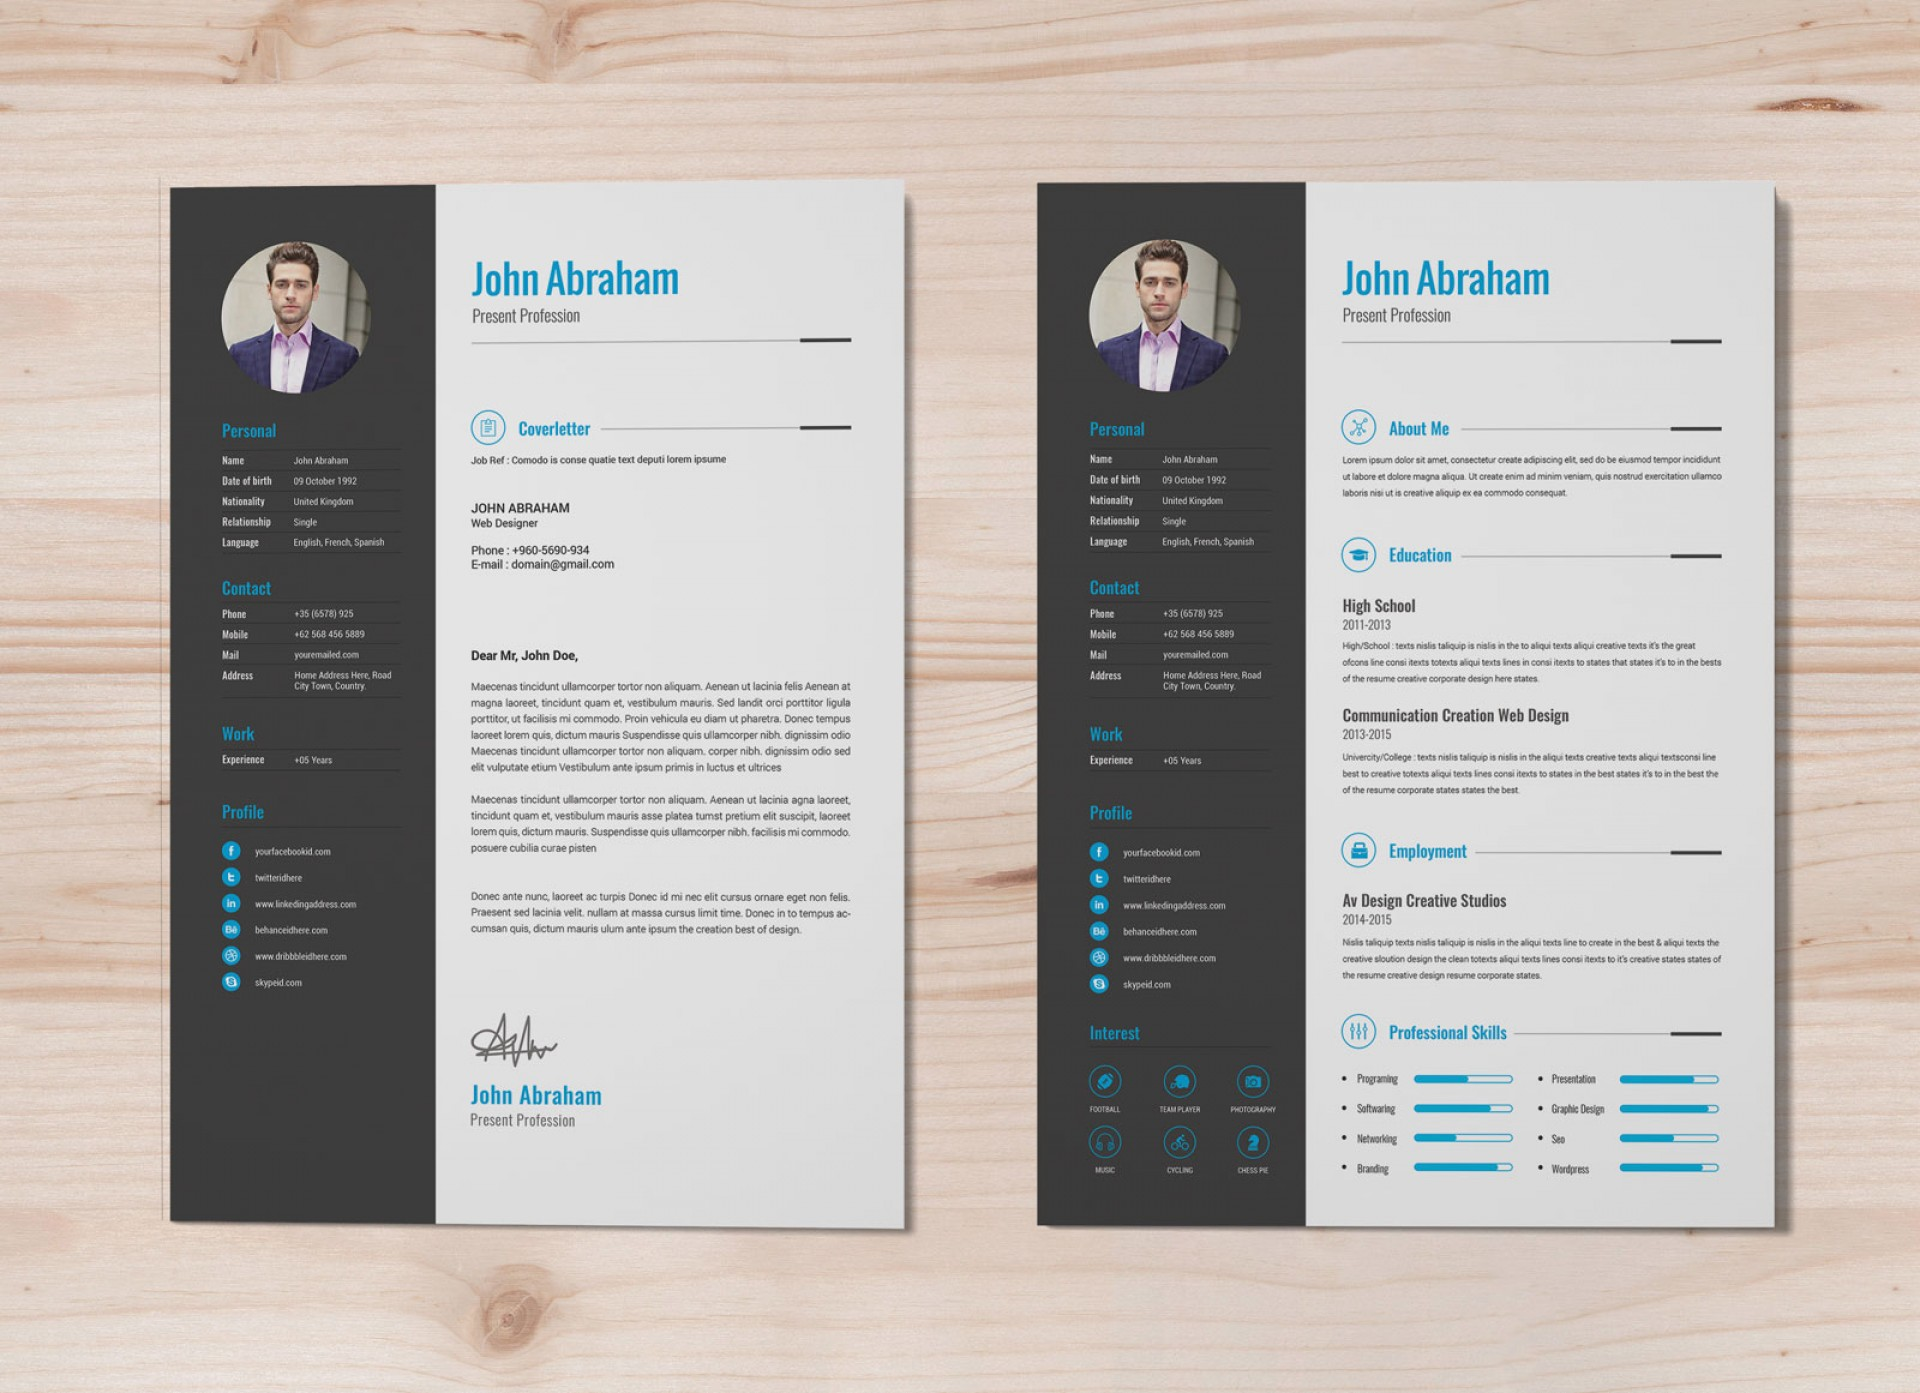 006 Fearsome Best Resume Template Free Inspiration  2019 2018 Top Download1920